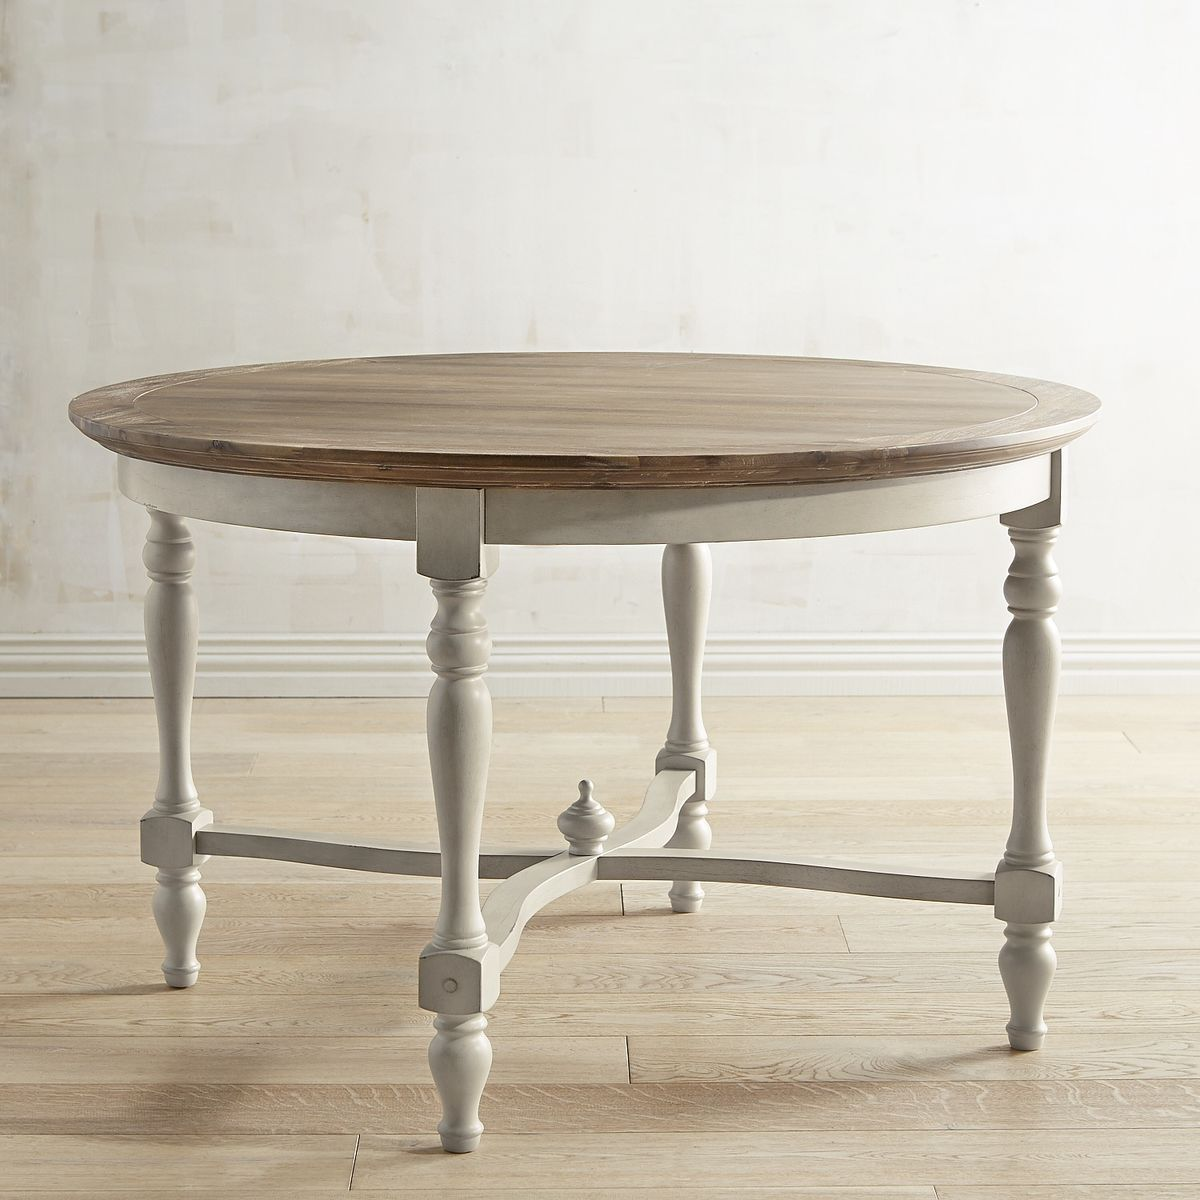 round kitchen tables round kitchen tables Round kitchen table 48 in natural stonewash